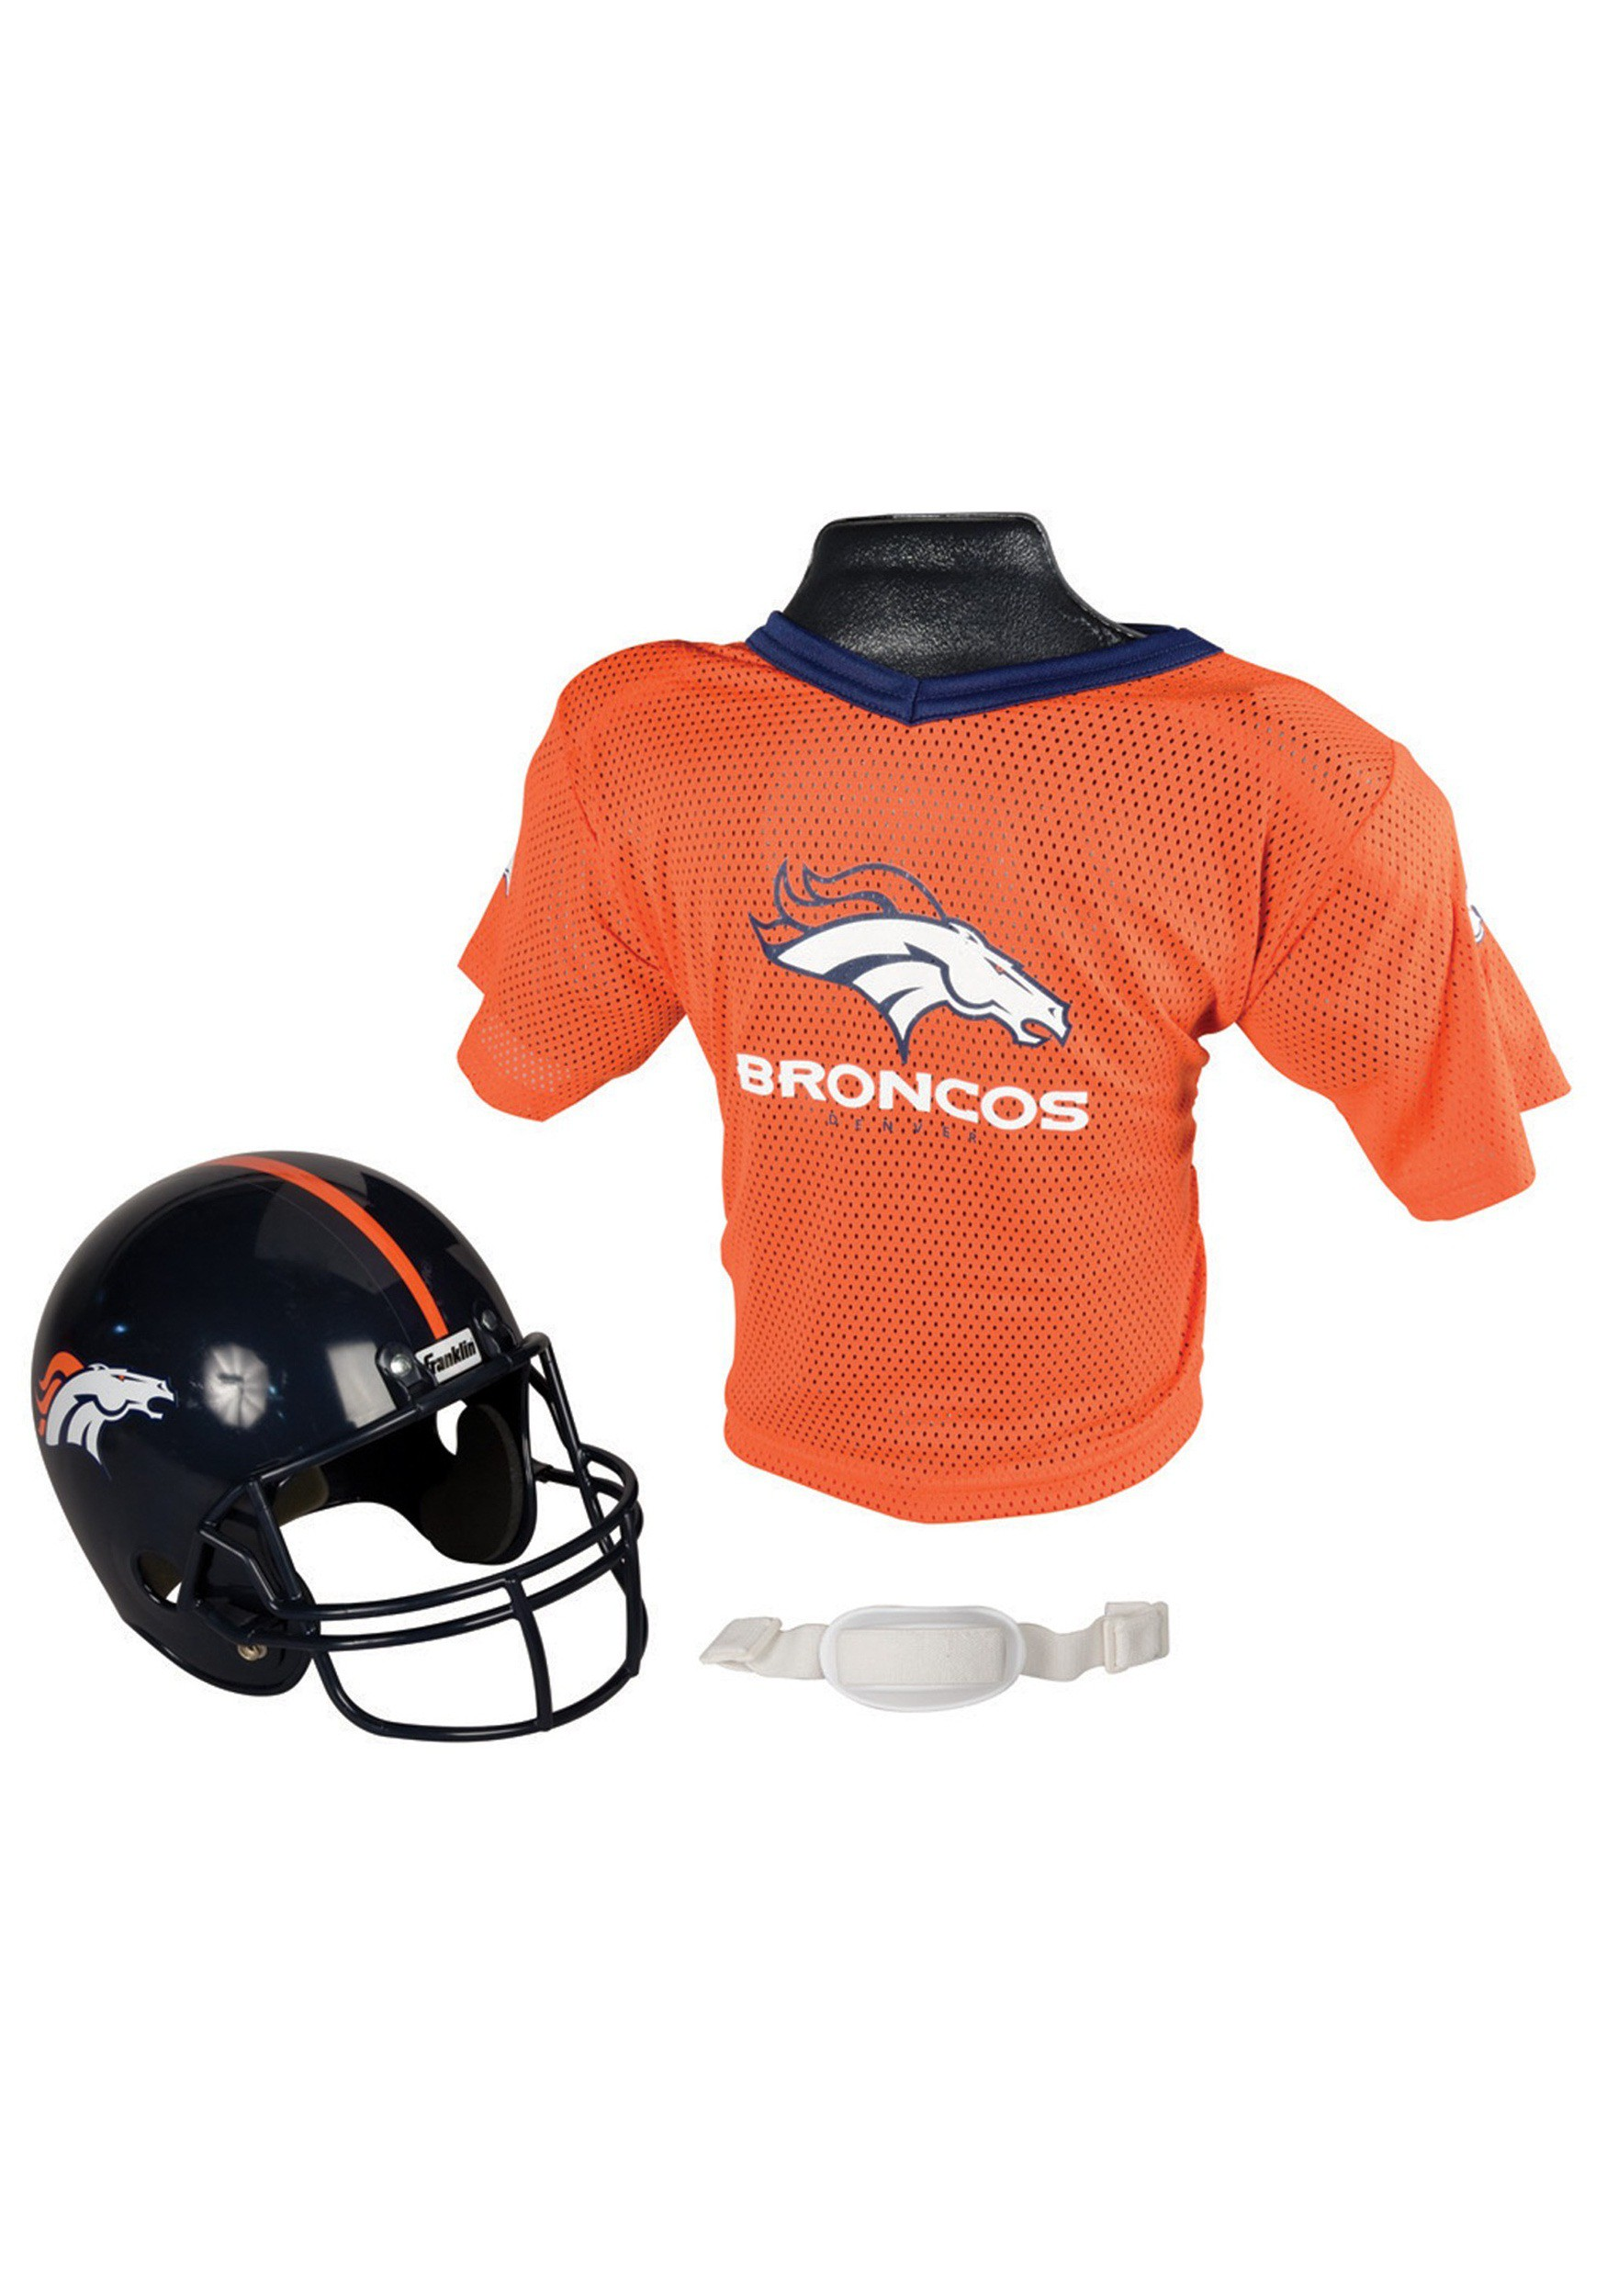 9b7df431f Child NFL Denver Broncos Helmet and Jersey Costume Set